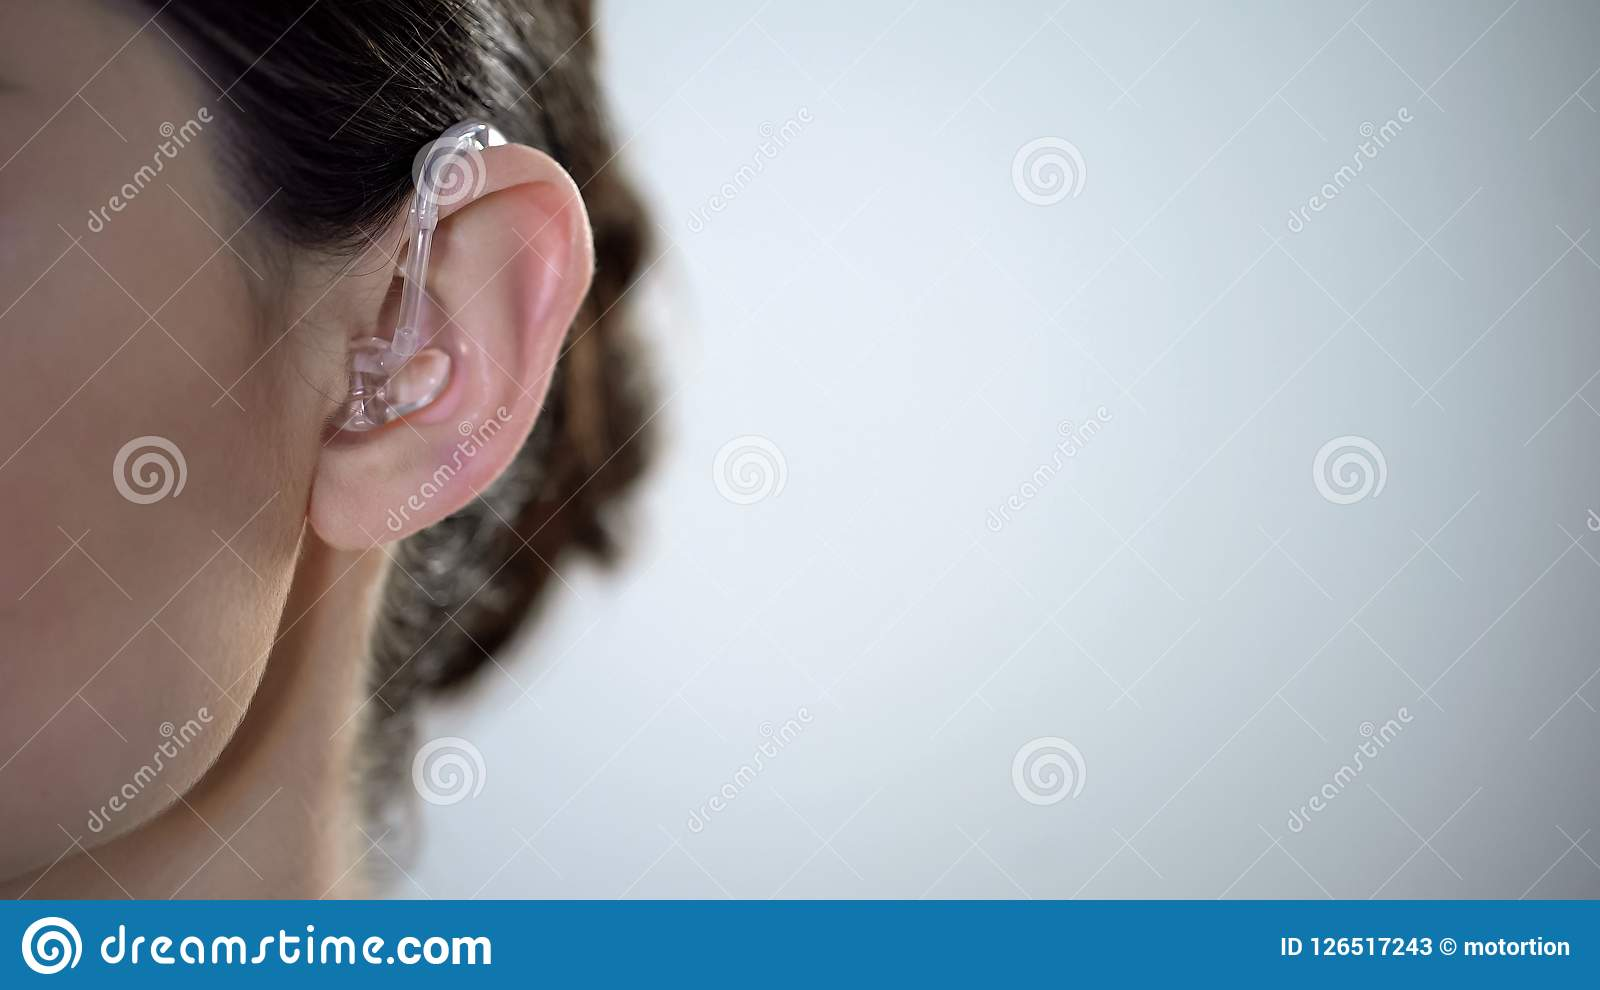 Closeup of ear with hearing aid, young deaf woman adjusting to environment